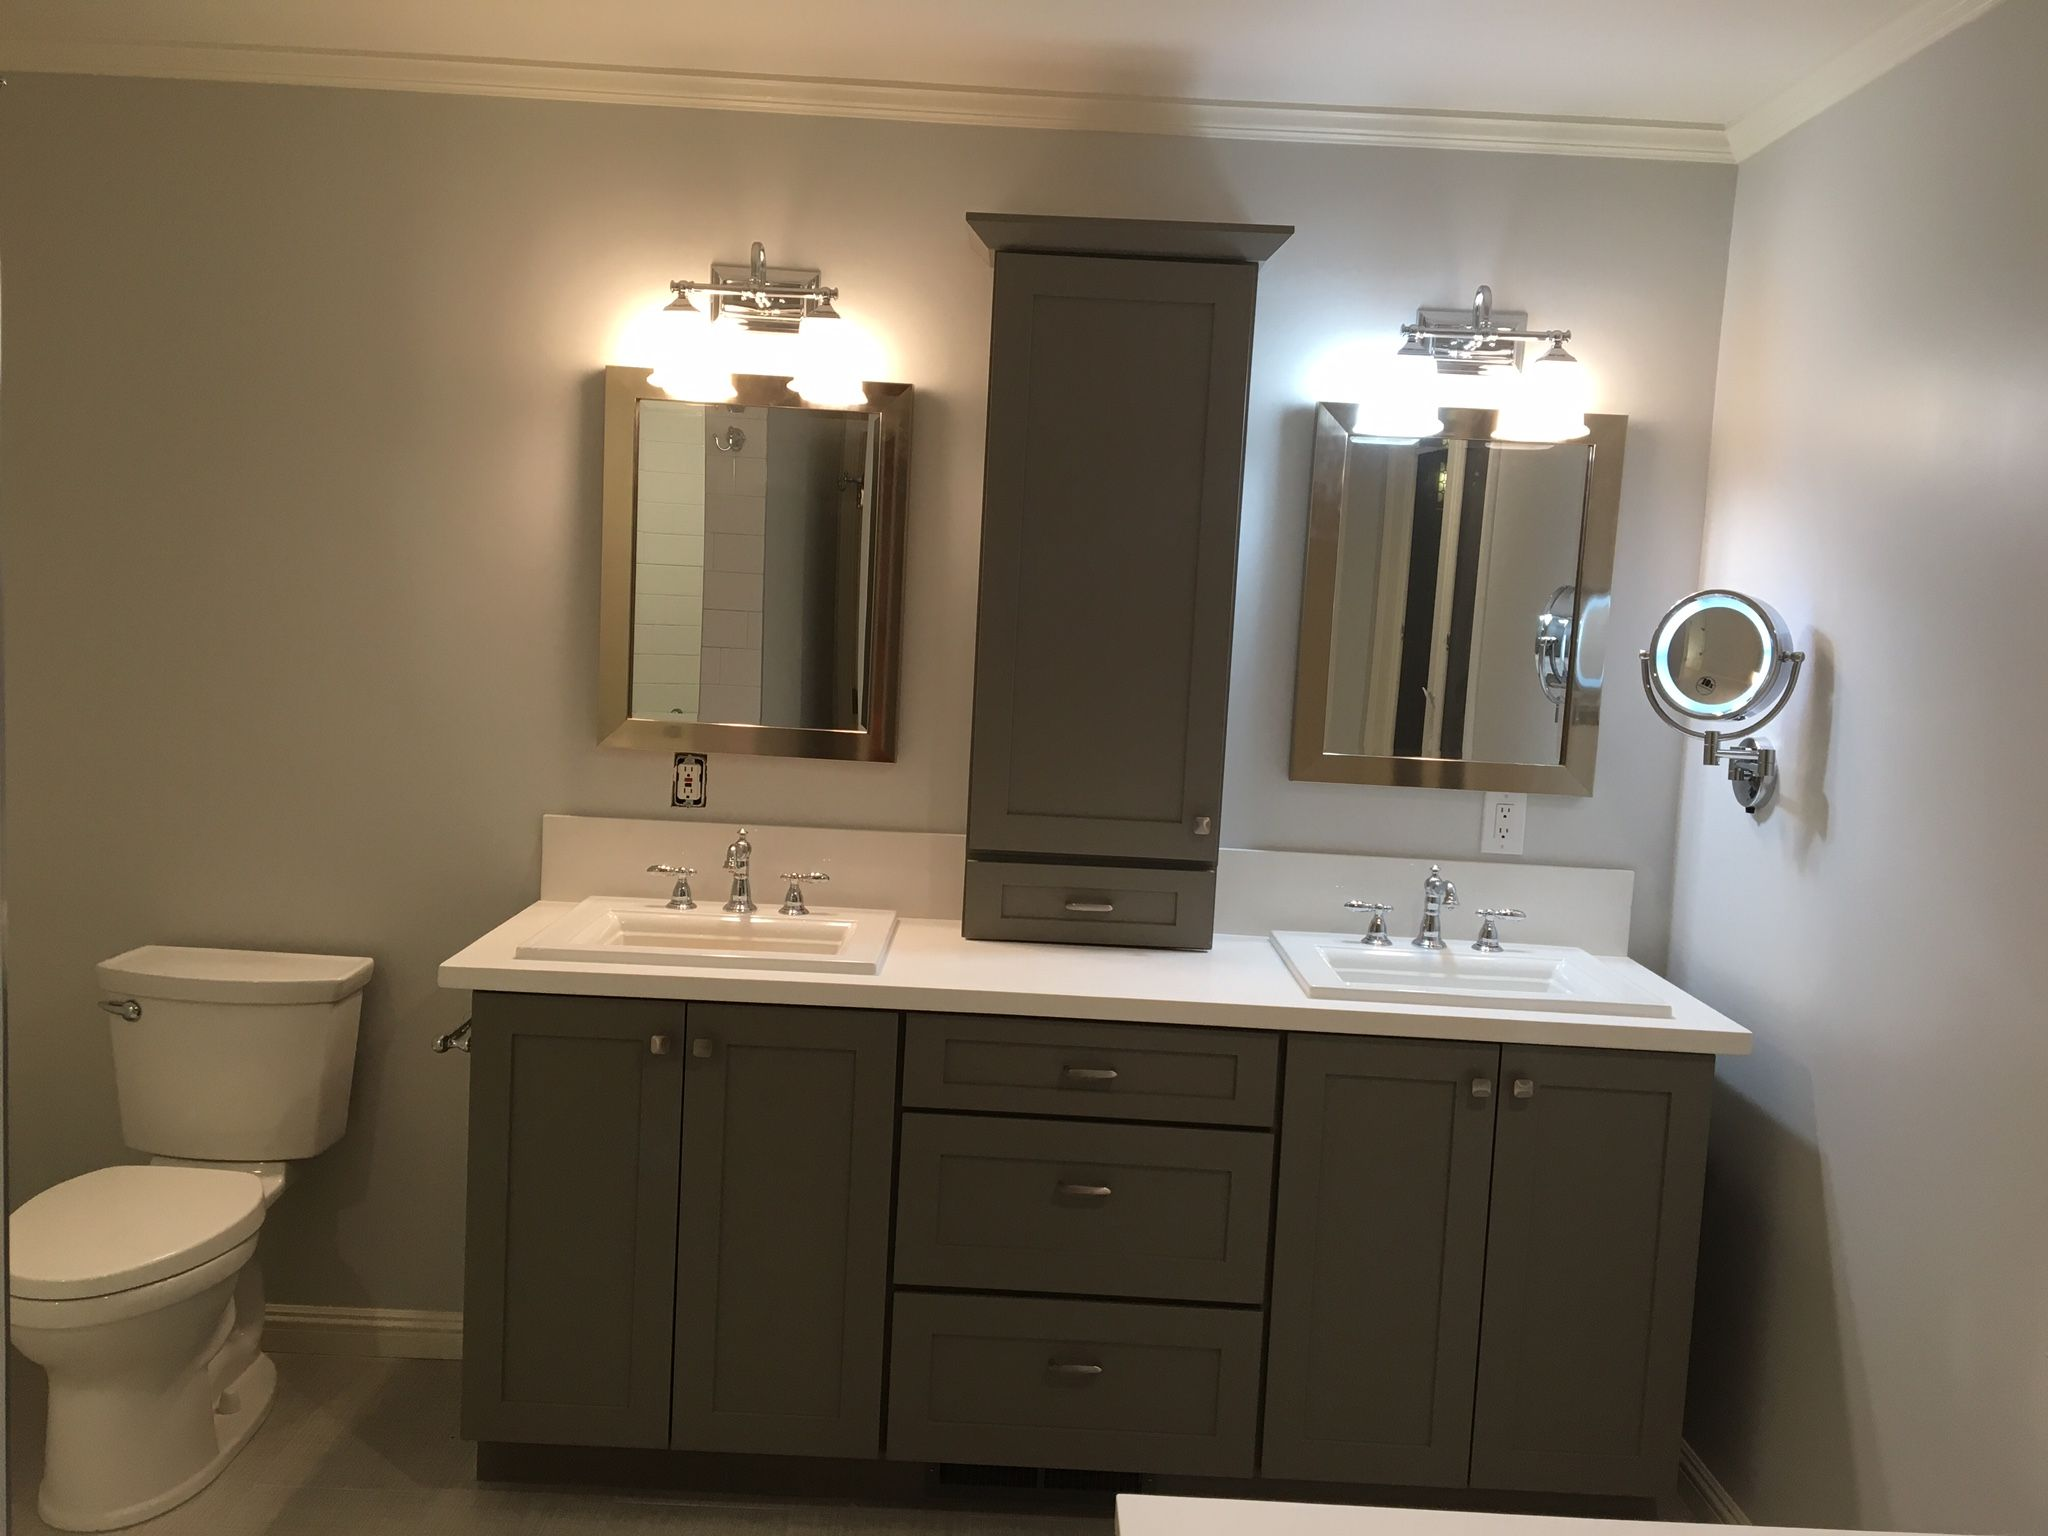 Bath Remodeling Project Features Shakerstyle Cabinetry By - Dayton bathroom remodeling